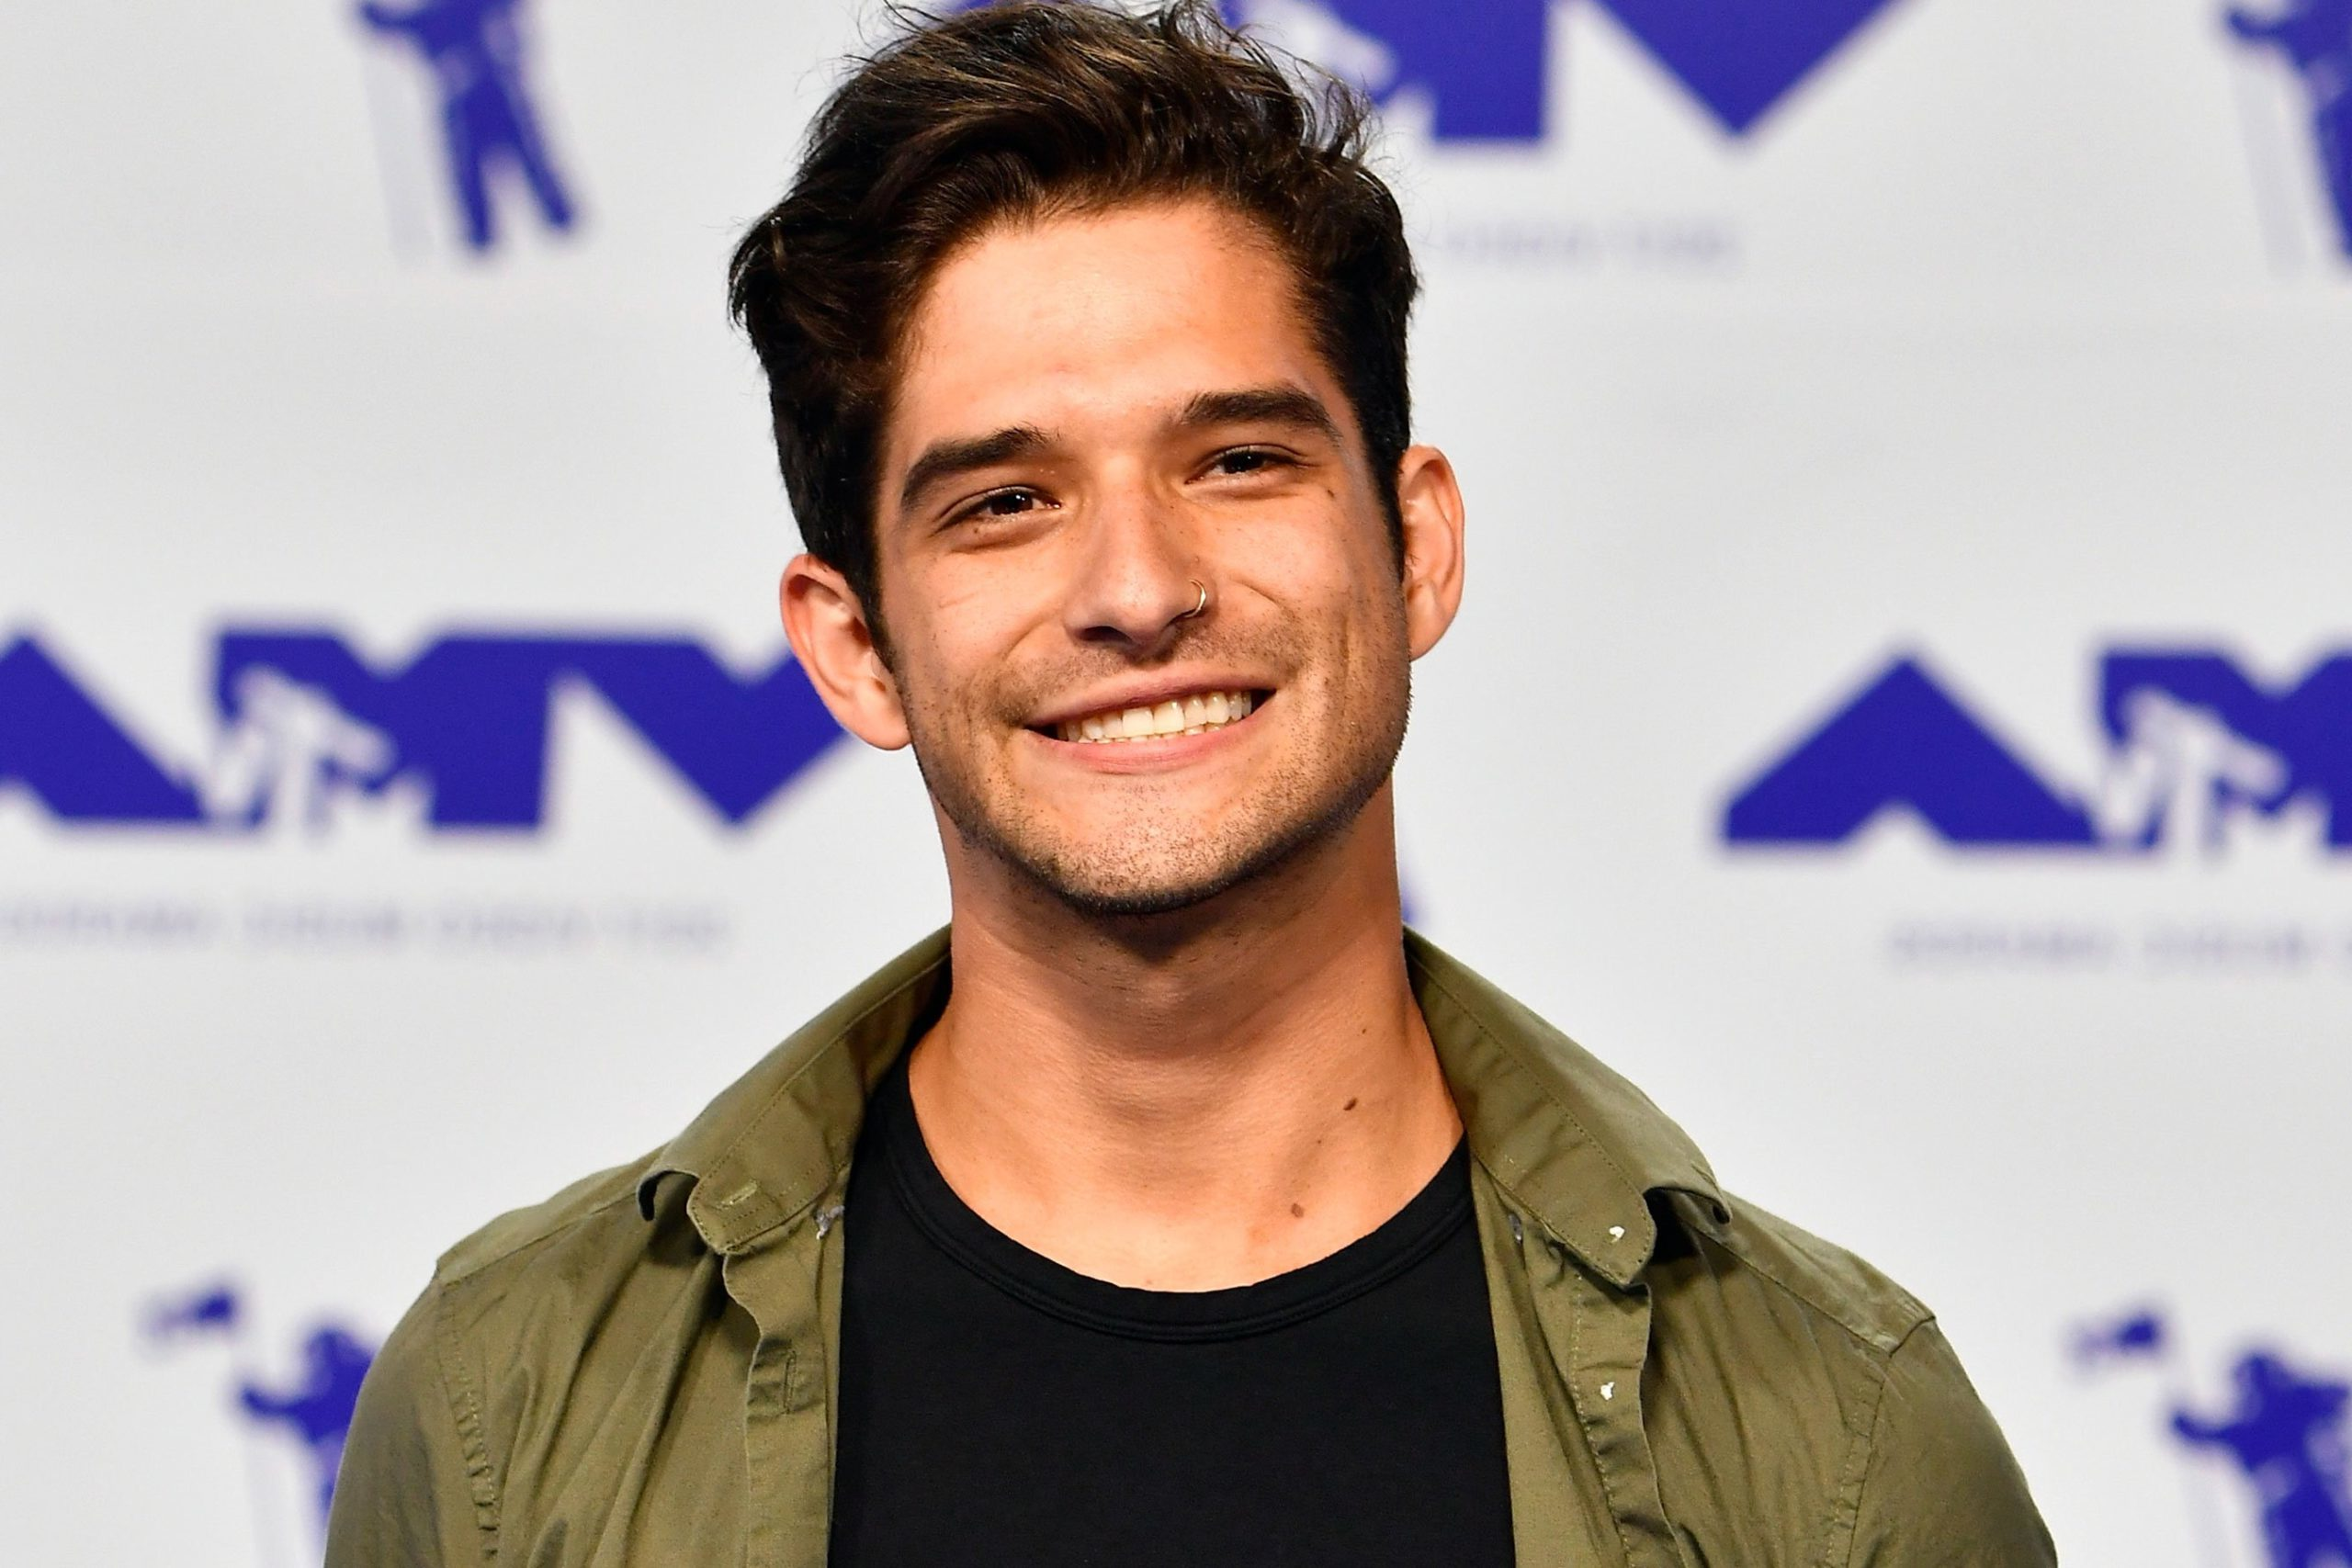 'Teen Wolf' star Tyler Posey announces OnlyFans debut with nude guitar video